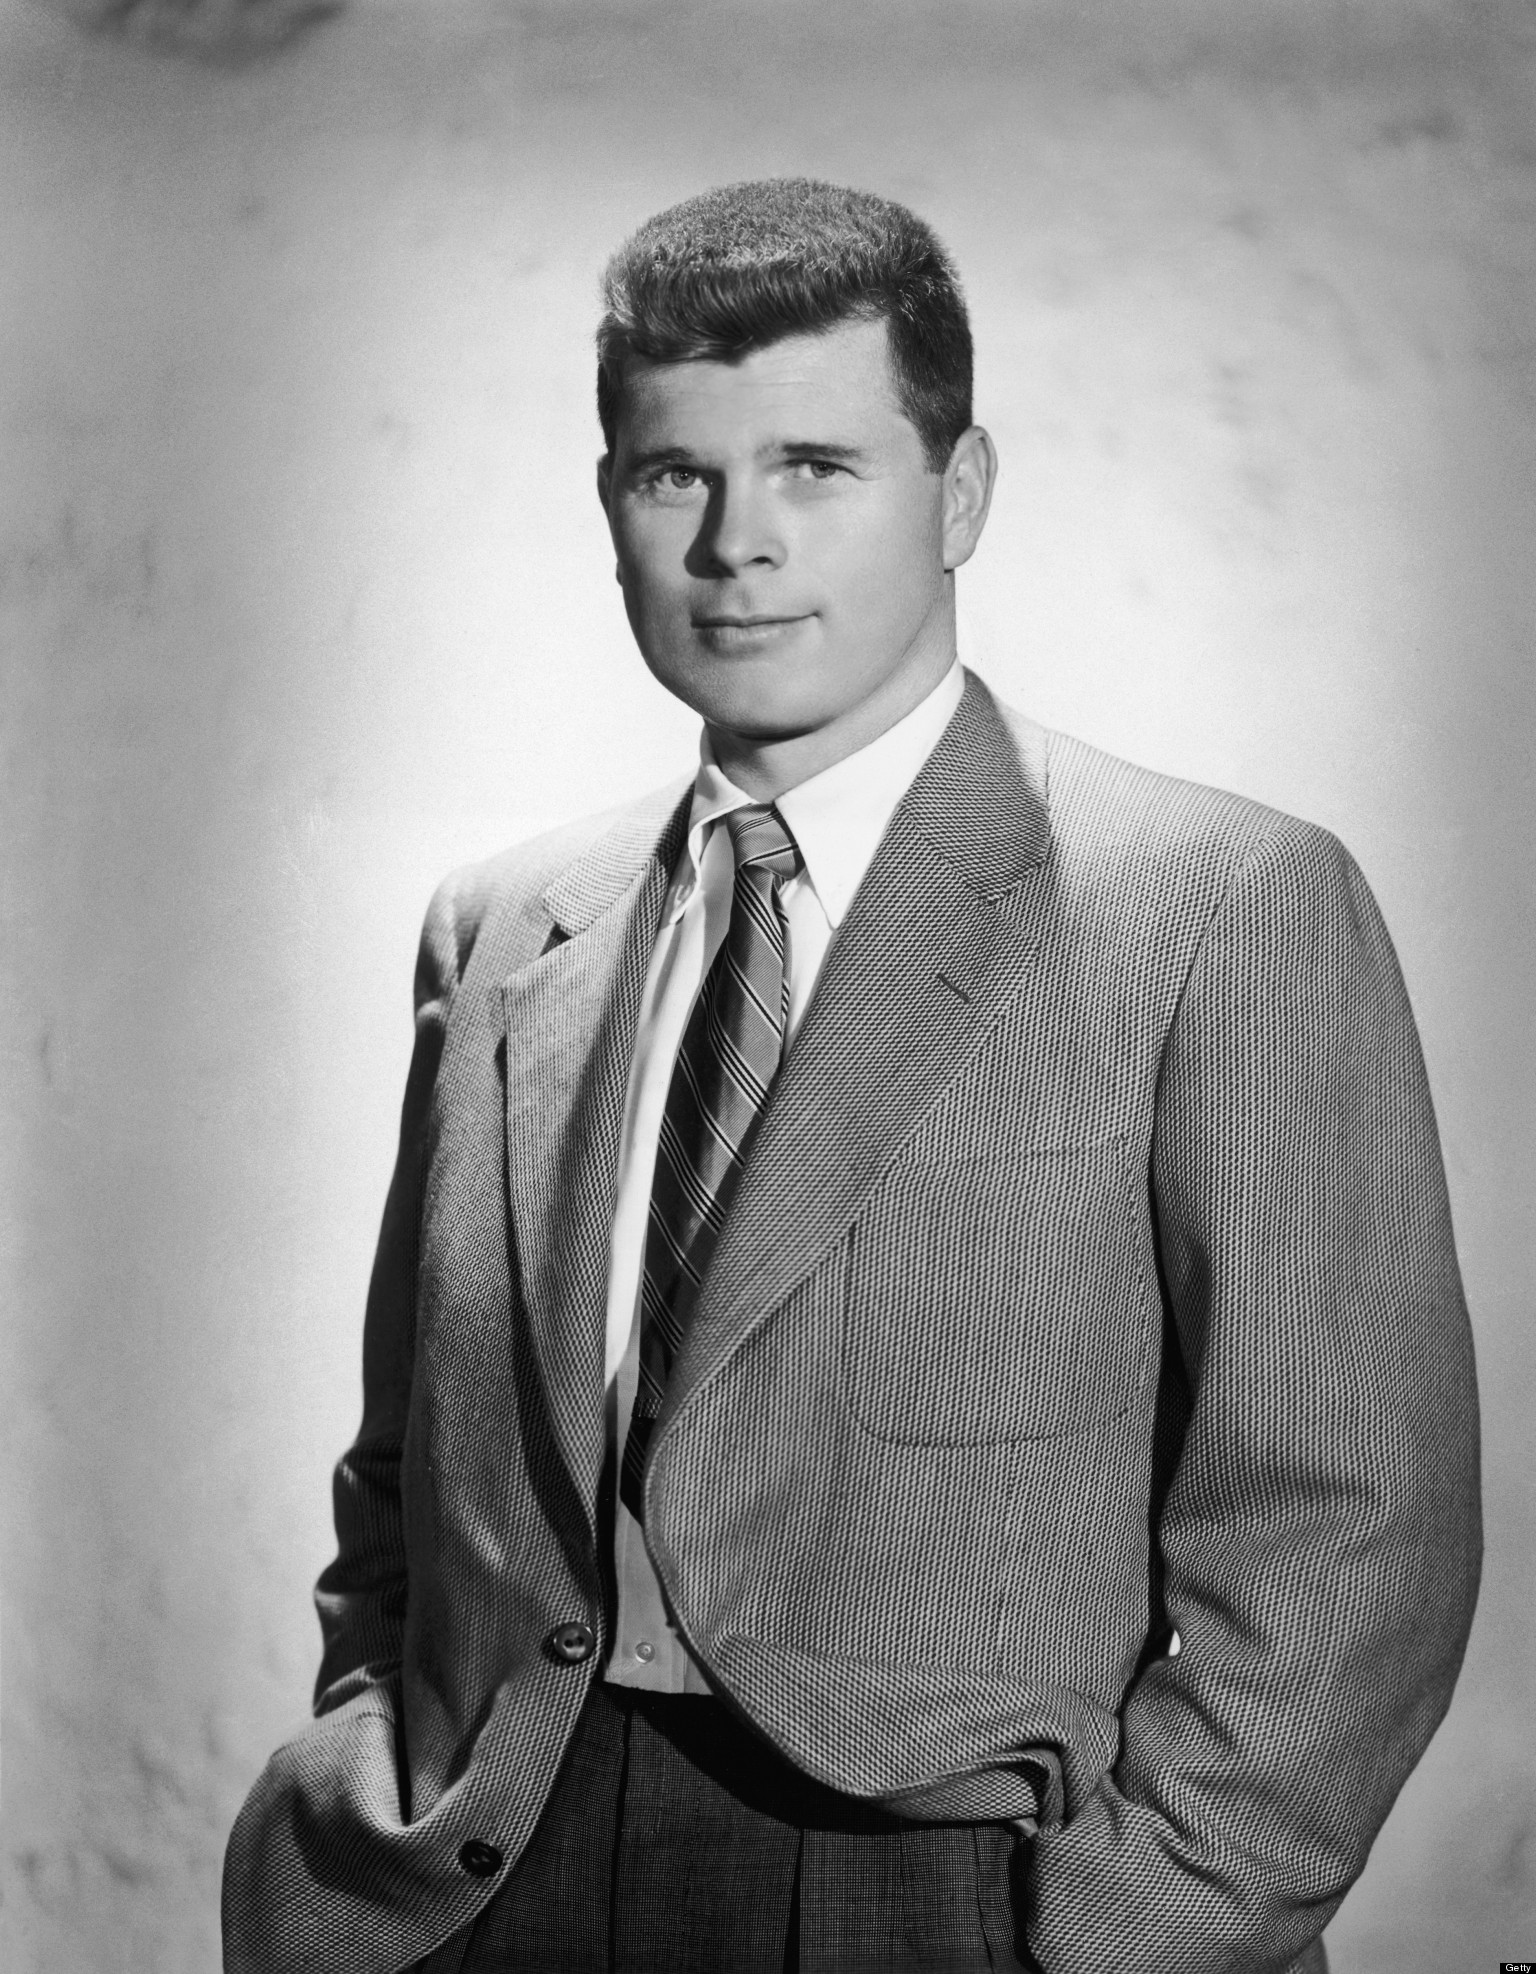 The American James Bond – Who was Barry Nelson? | Live for Films